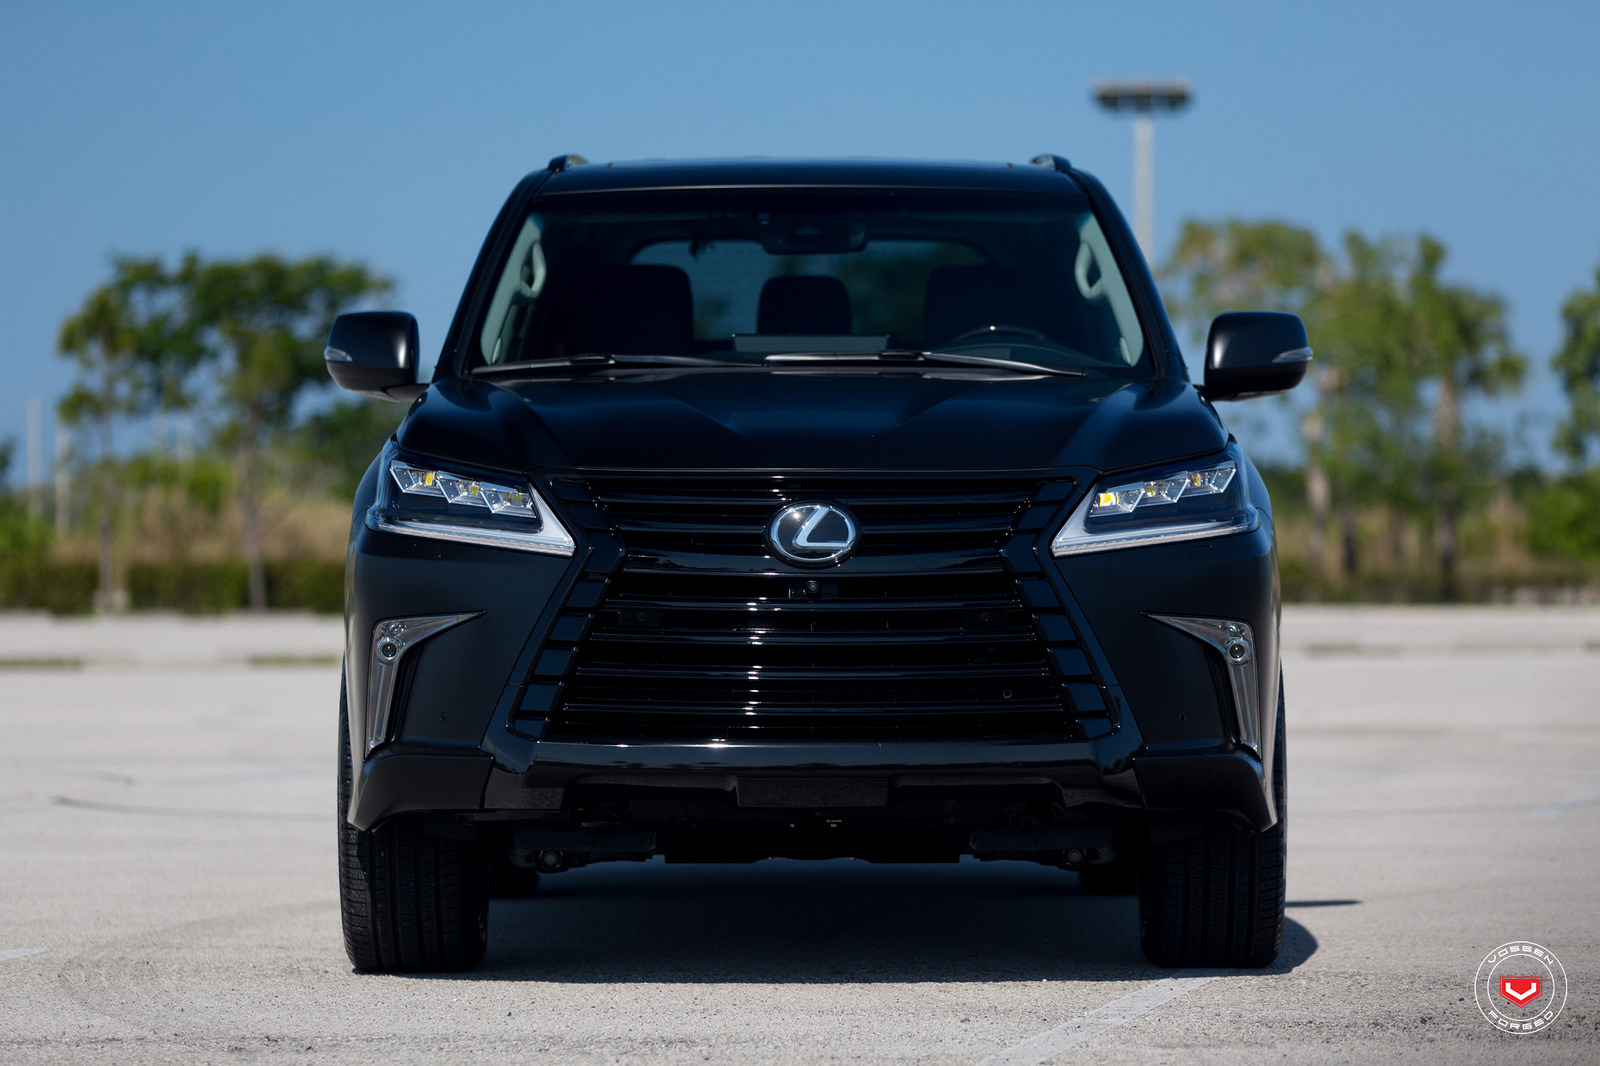 JM Lexus Murders Out The All New Lexus LX